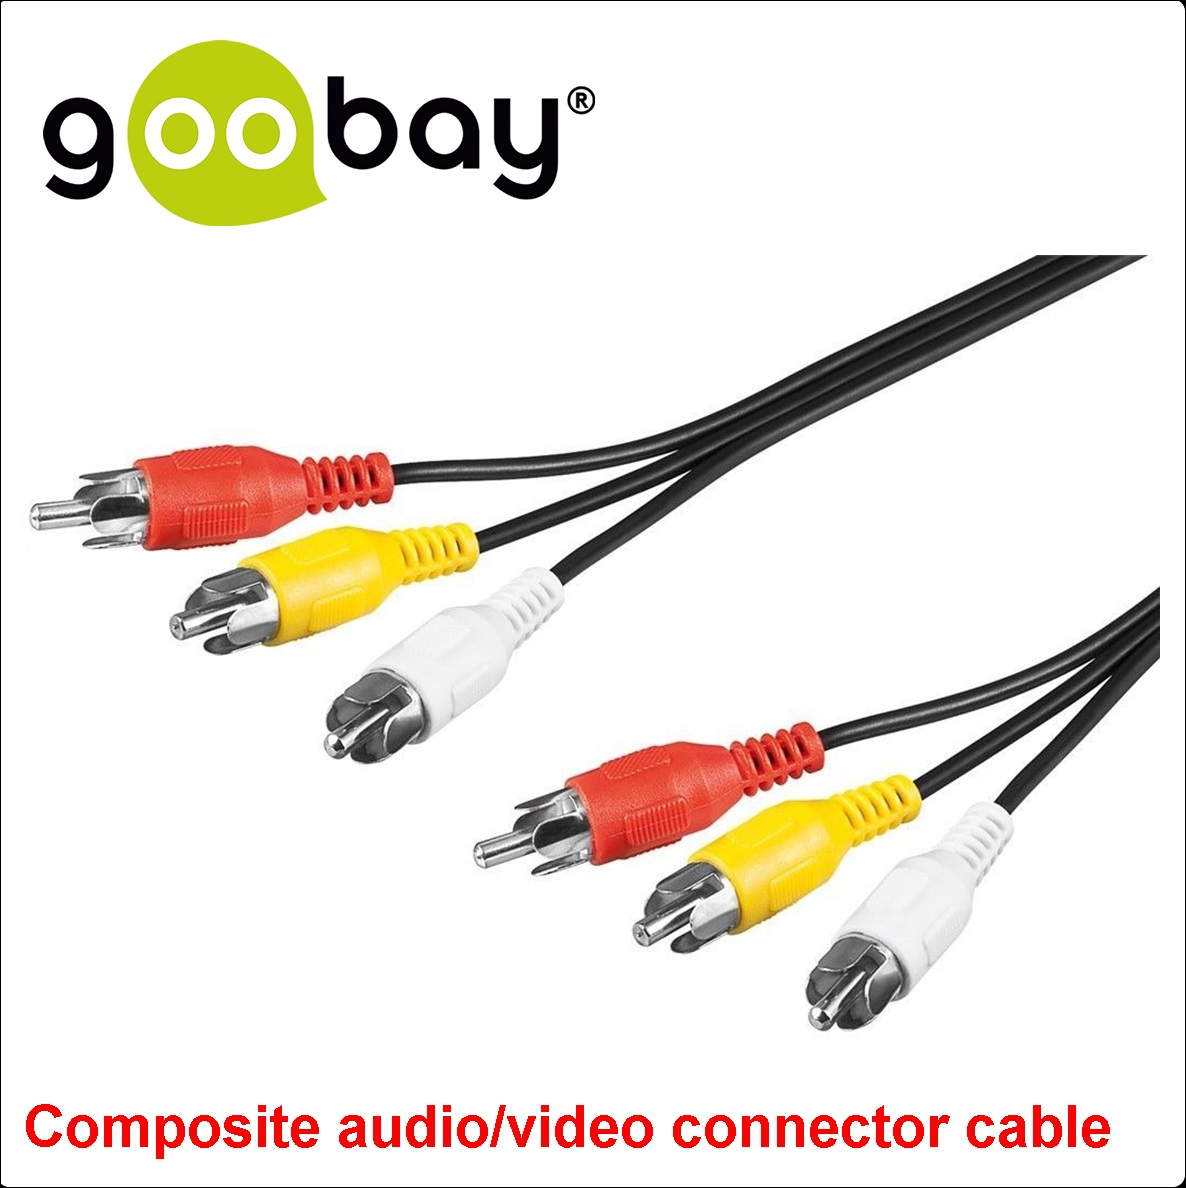 3 RCA male to 3 RCA male 5.0m GOOBAY 50383